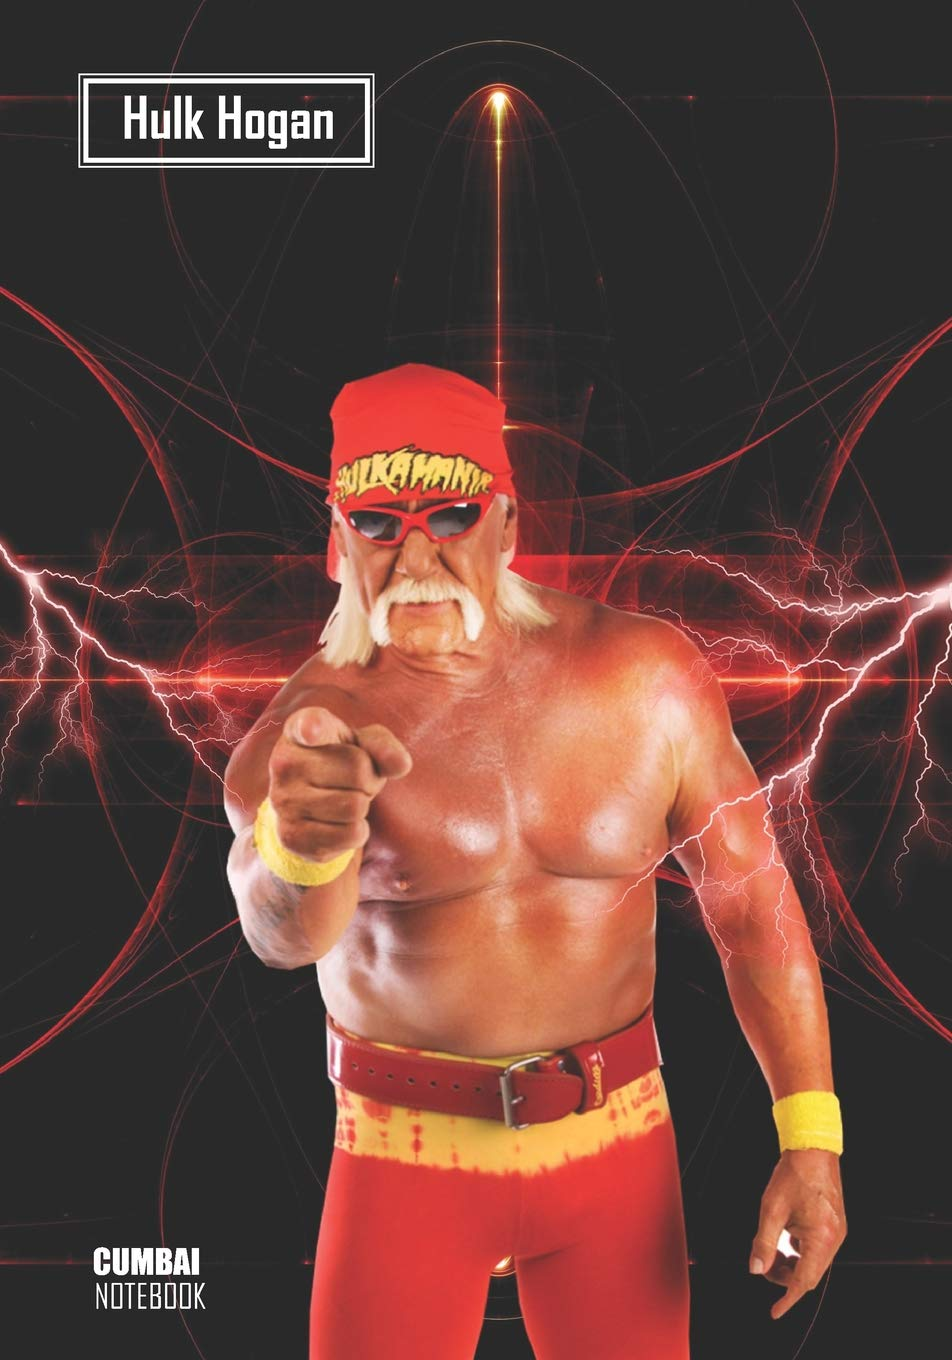 Notebook  Hulk Hogan Medium College Ruled Notebook 129 Pages Lined 7 X 10 In  17.78 X 25.4 Cm